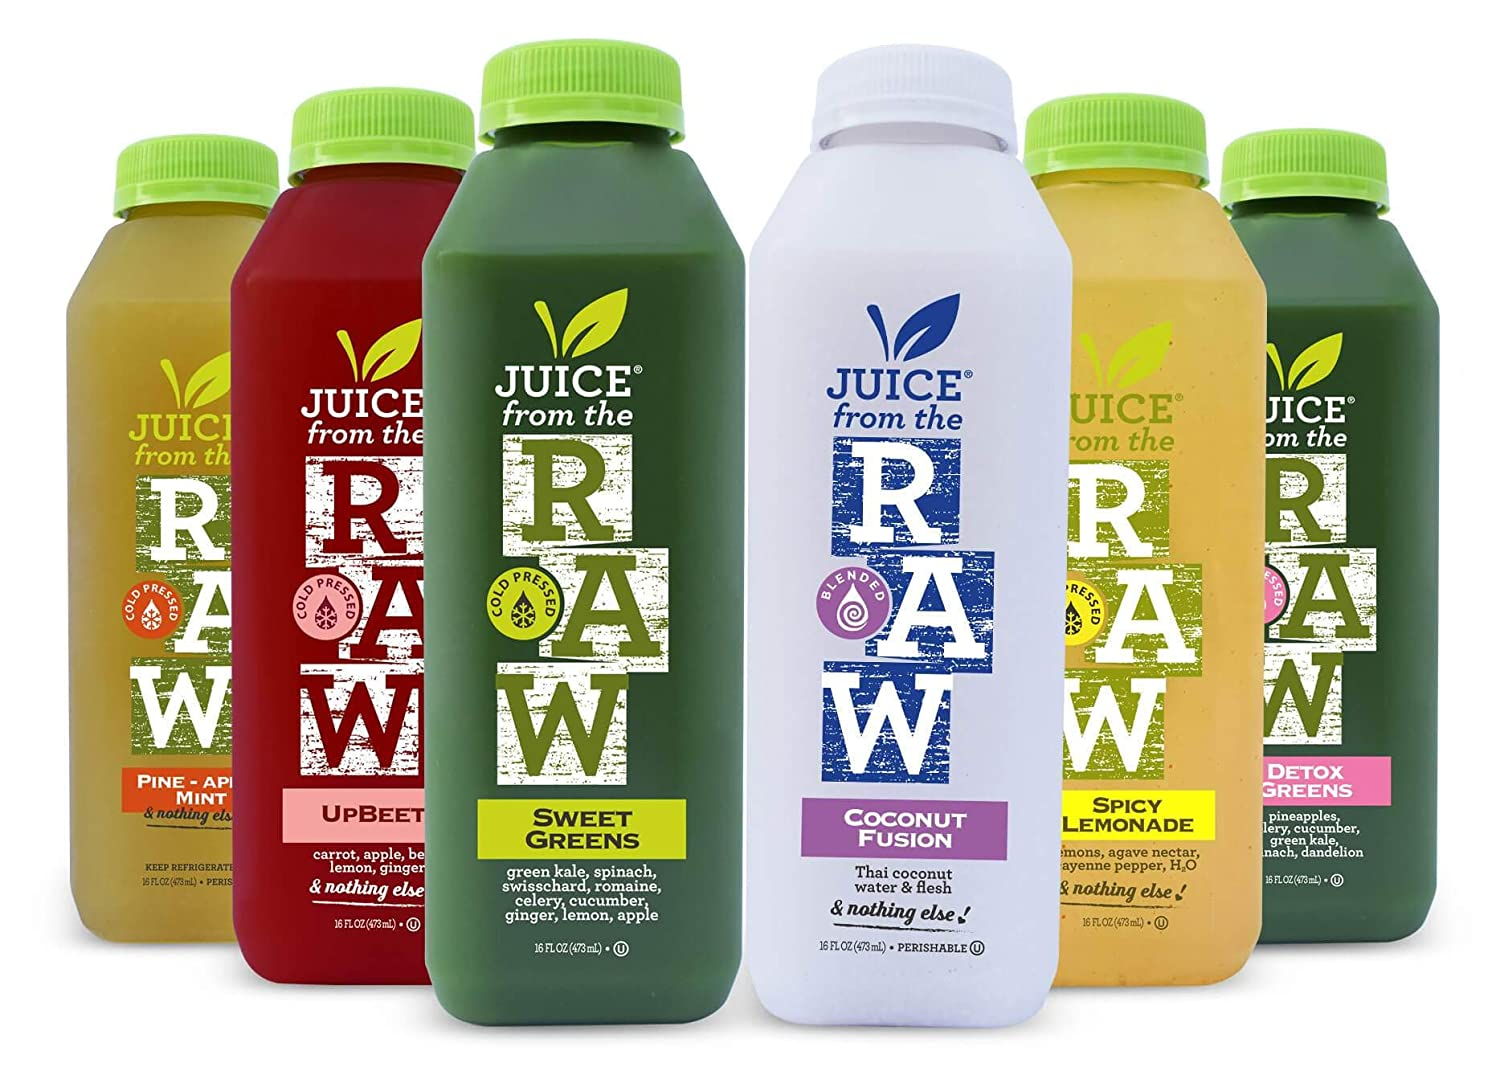 3-Day Juice Cleanse with Coconut Fusion by Juice From the RAW® - Most Popular Juice Cleanse to Lose Weight Quickly / Detoxify Your Body / 100% Raw Cold-Pressed Juices (18 Total 16 oz. Bottles)